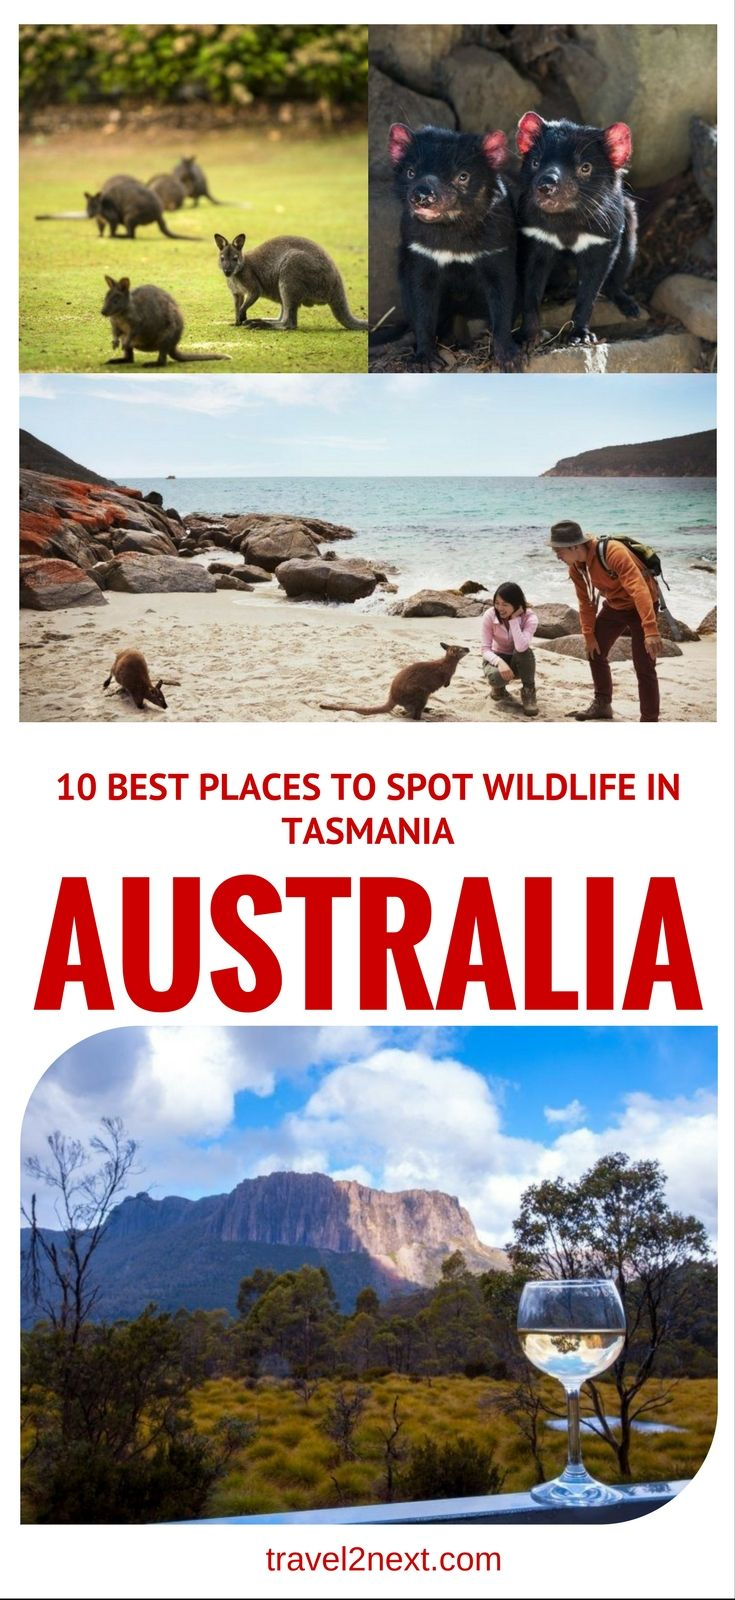 10 best places to spot wildlife in Tasmania. Did you know Tasmania has 33 native terrestrial mammals and 41 marine mammals?